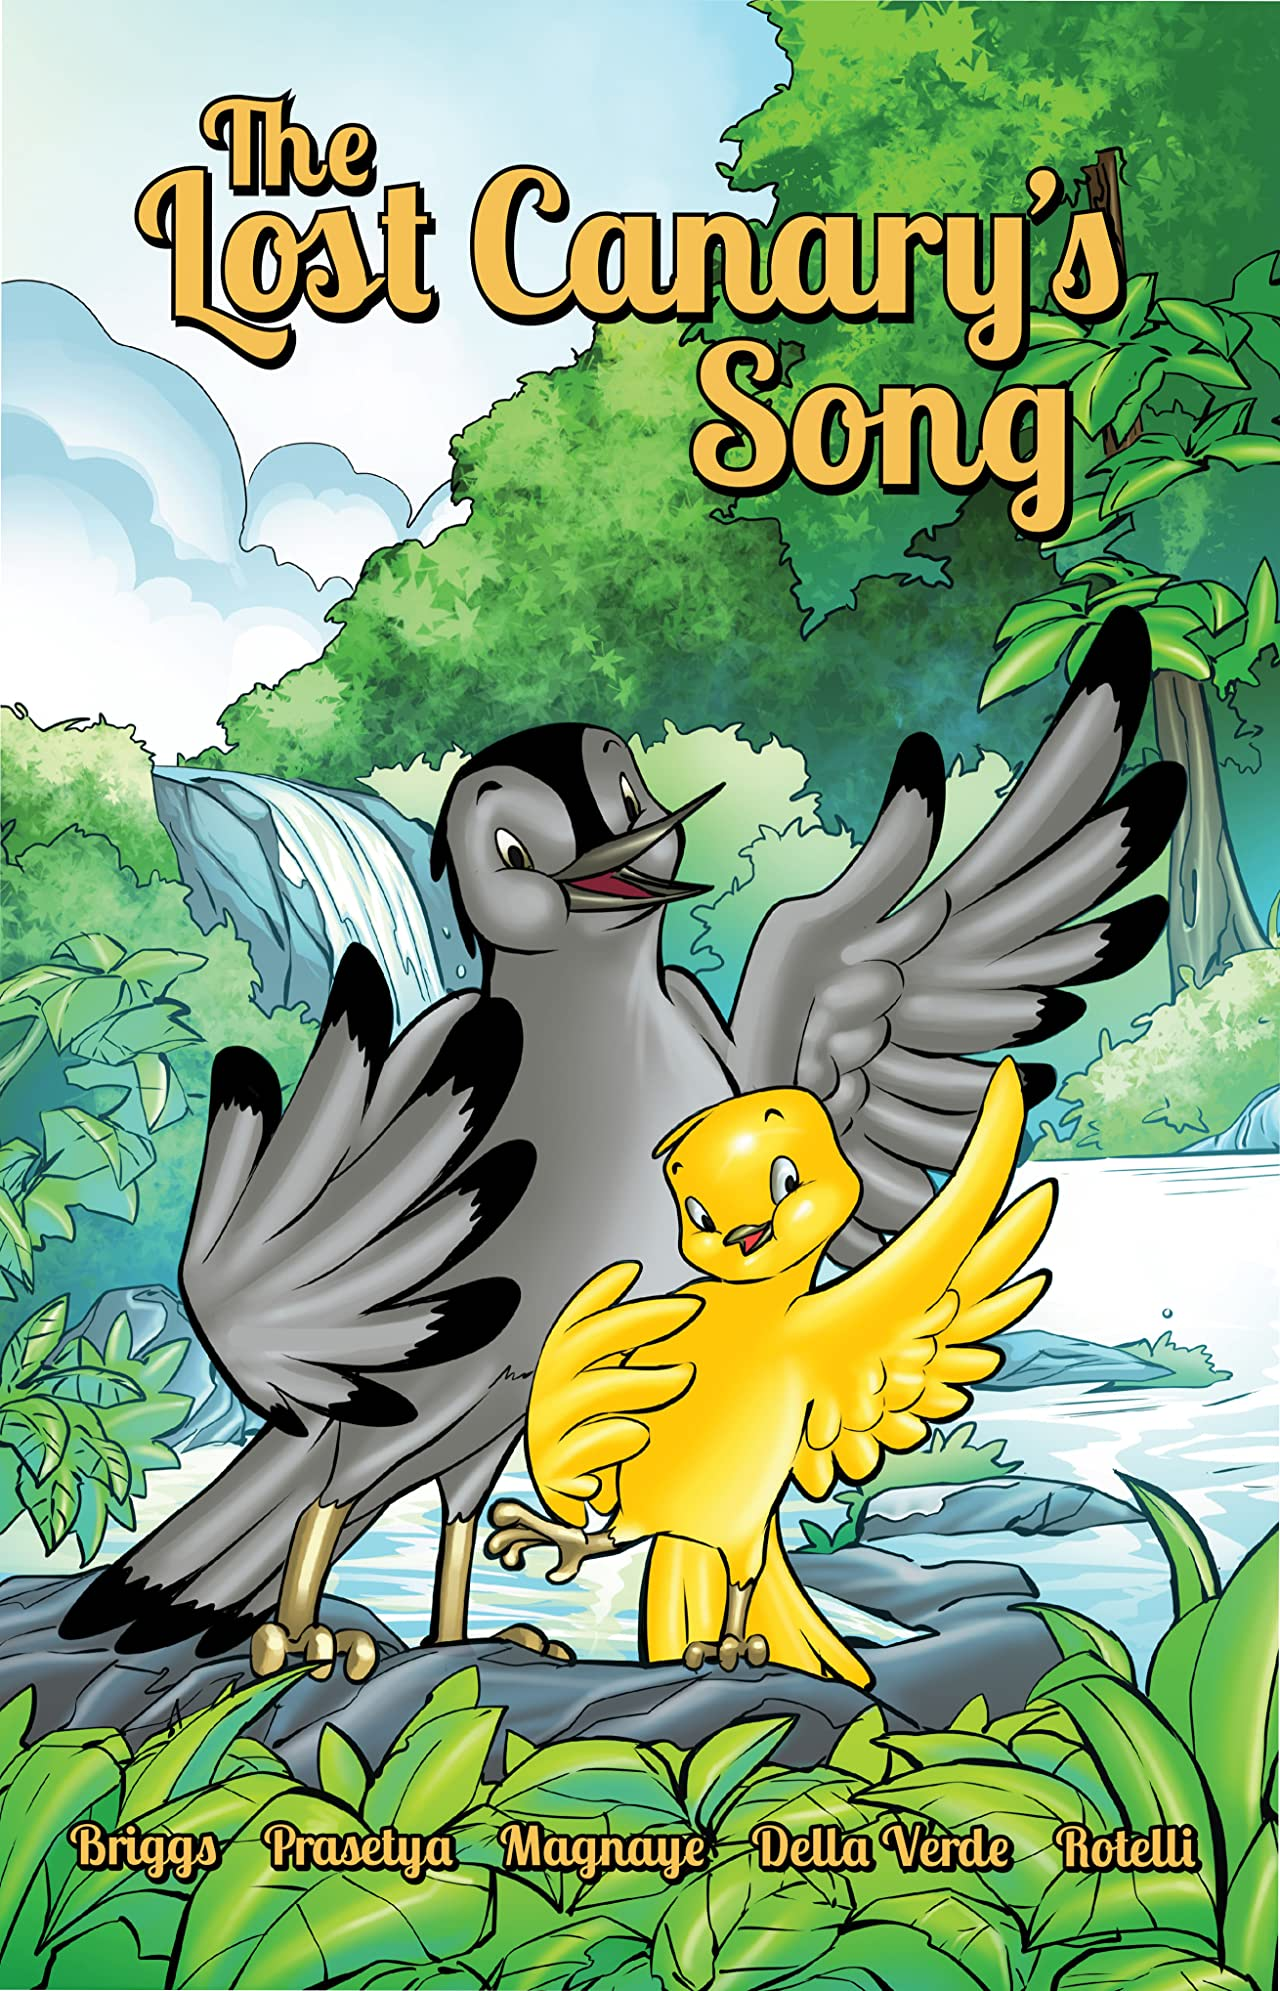 The Lost Canary's Song